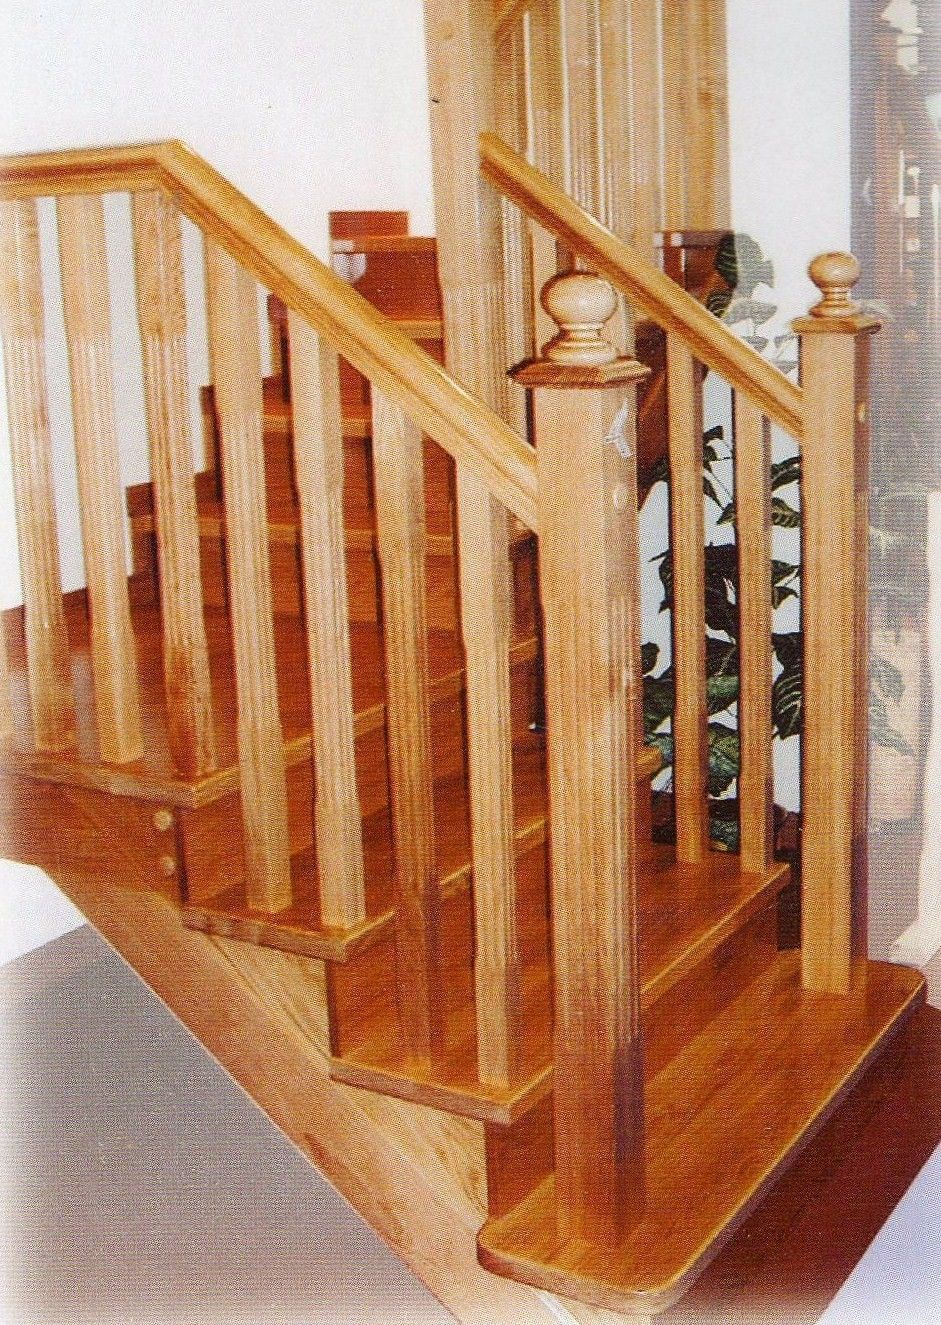 Escalera en madera maciza de roble escalera pinterest for Escalera de jardin de madera